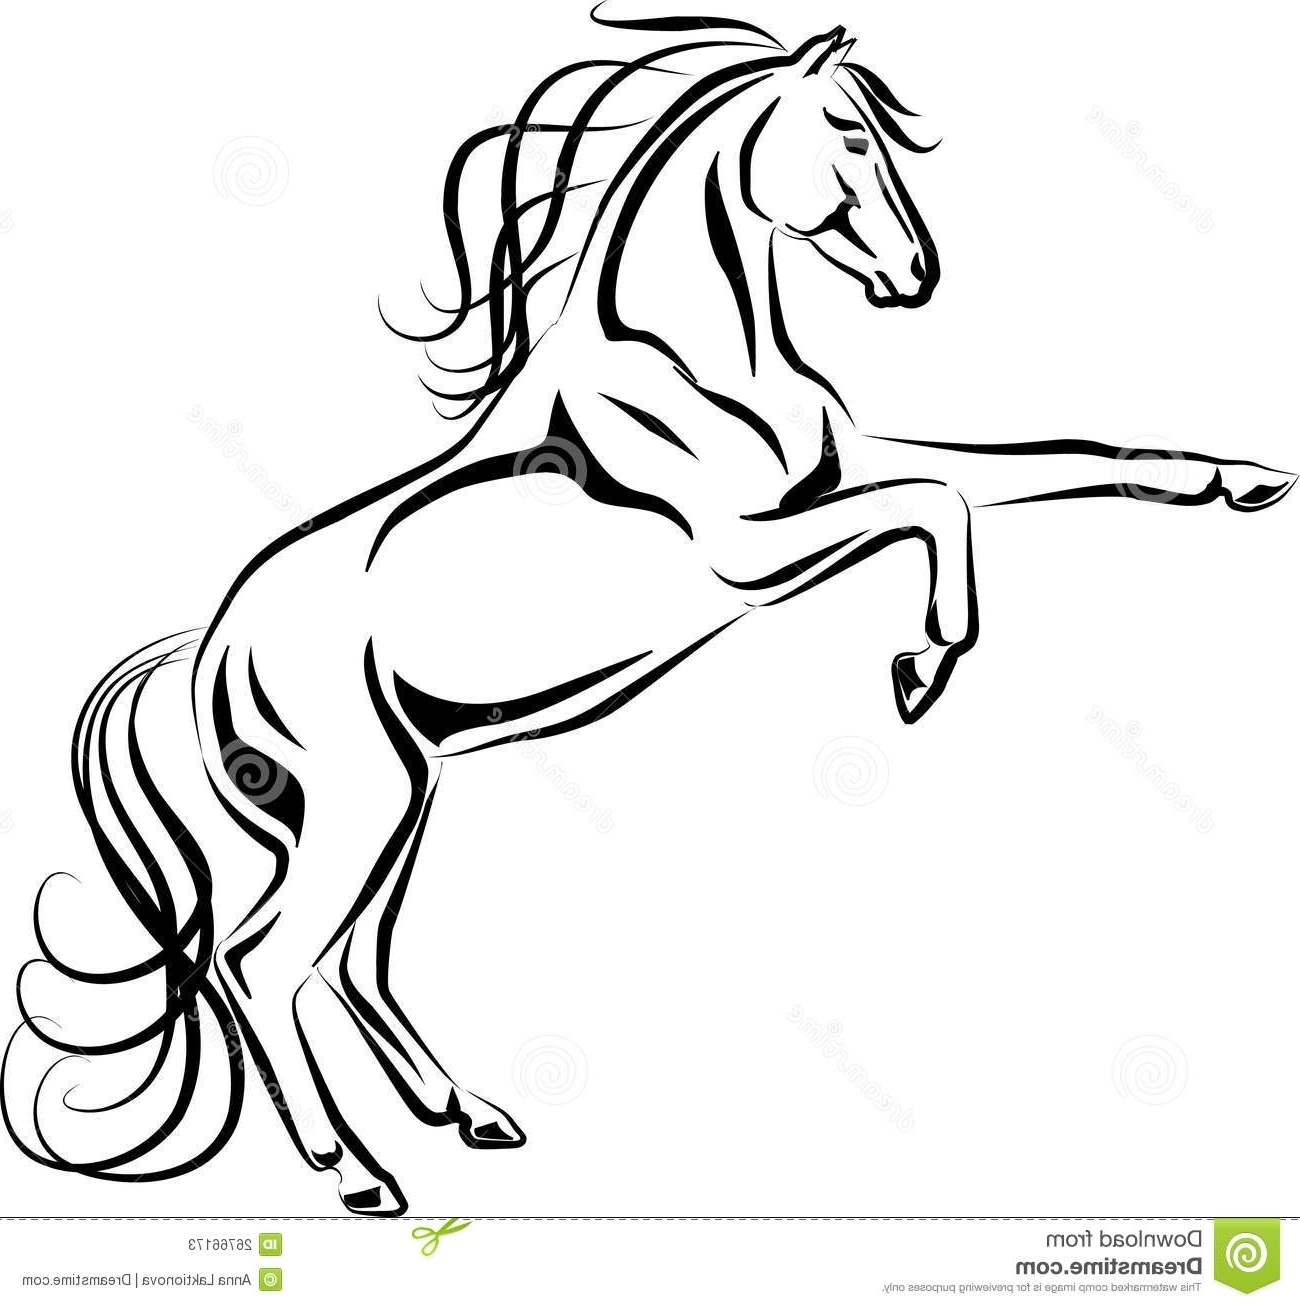 rainbow fish coloring page - horse head silhouette coloring page vector set of horse head silhouette different horse haircut type